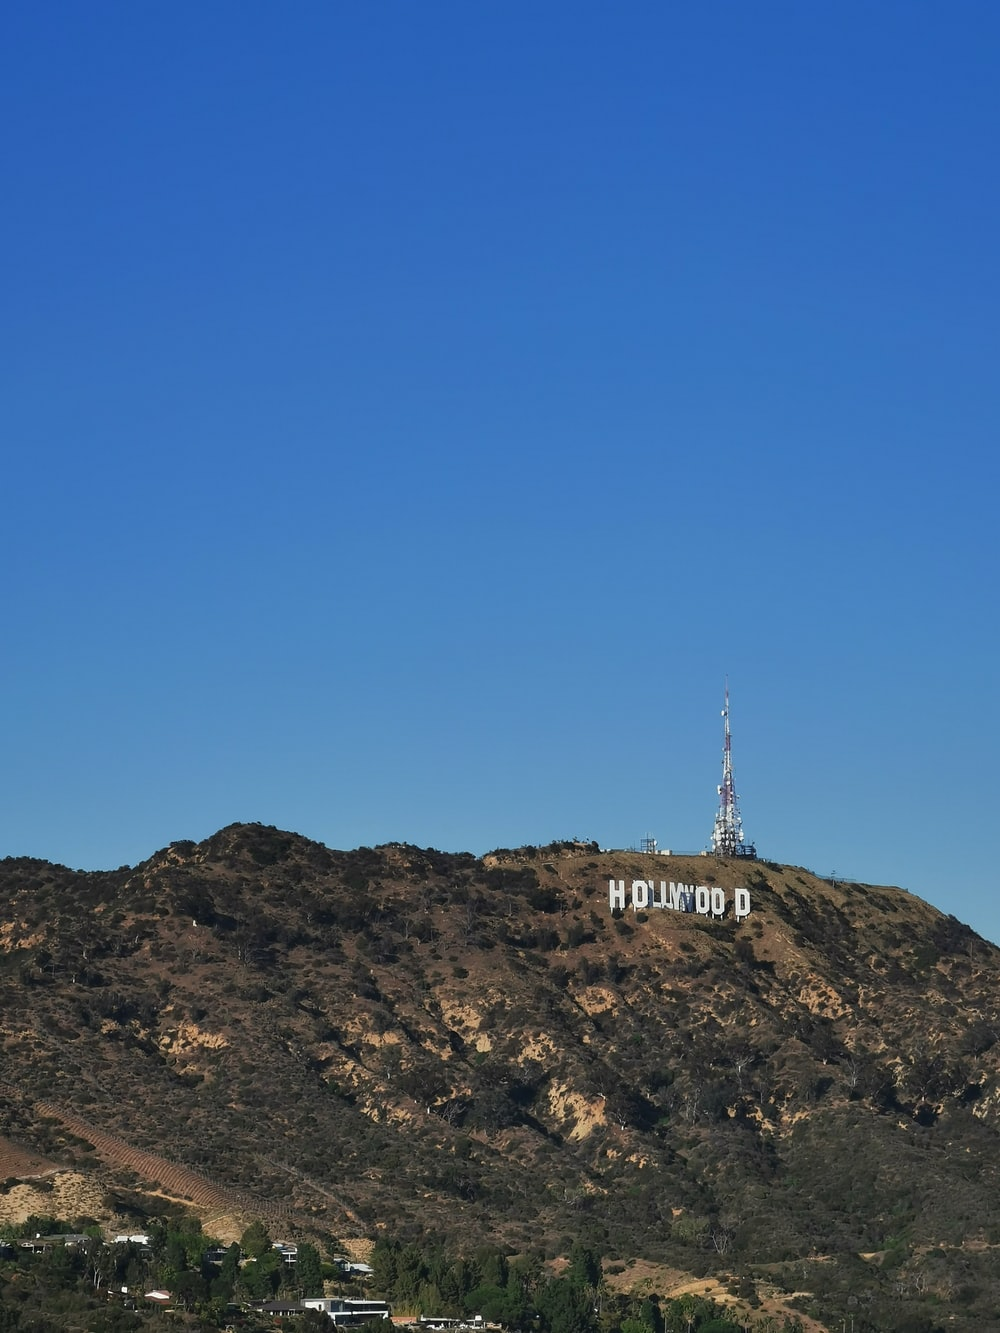 white tower on brown rock mountain under blue sky during daytime